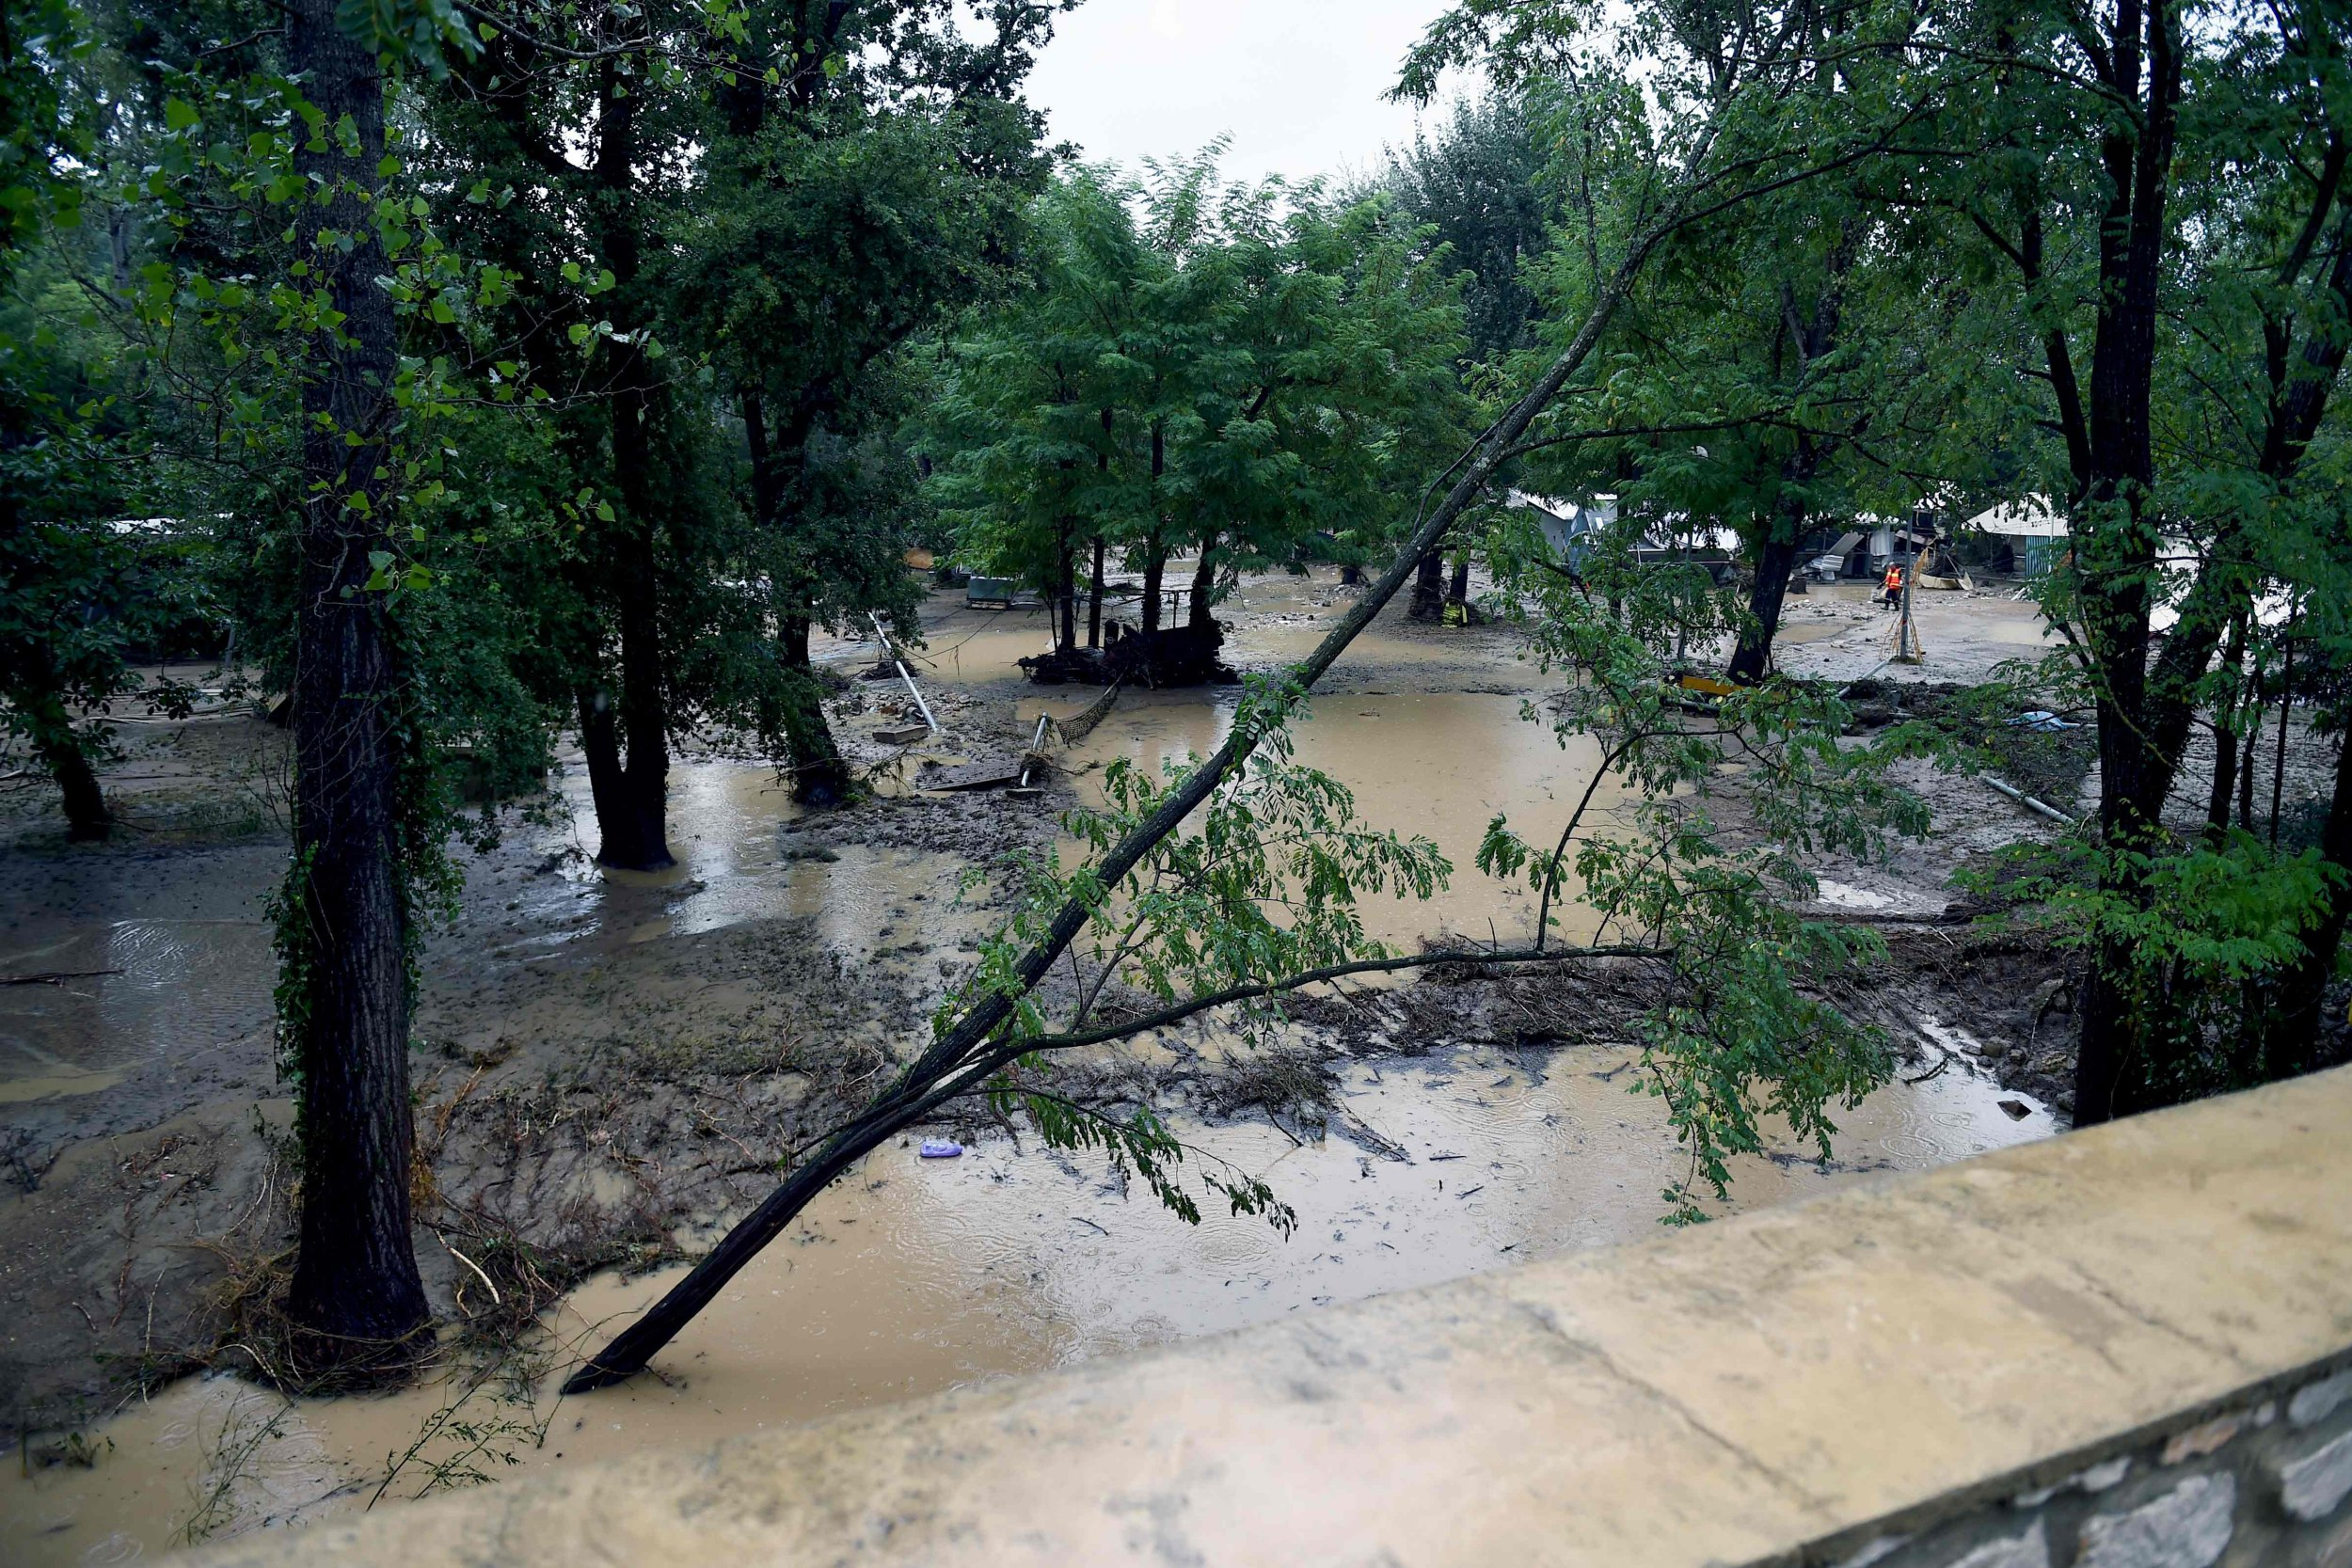 This picture shows a flooded and damaged camping as storms and heavy rains sweep across France on August 9, 2018 in Saint-Julien-de-Peyrolas, southern France. - The bad weather caused large power cuts and a man who was working in a summer camp went missing according to the gendarmerie. (Photo by Boris HORVAT / AFP)BORIS HORVAT/AFP/Getty Images